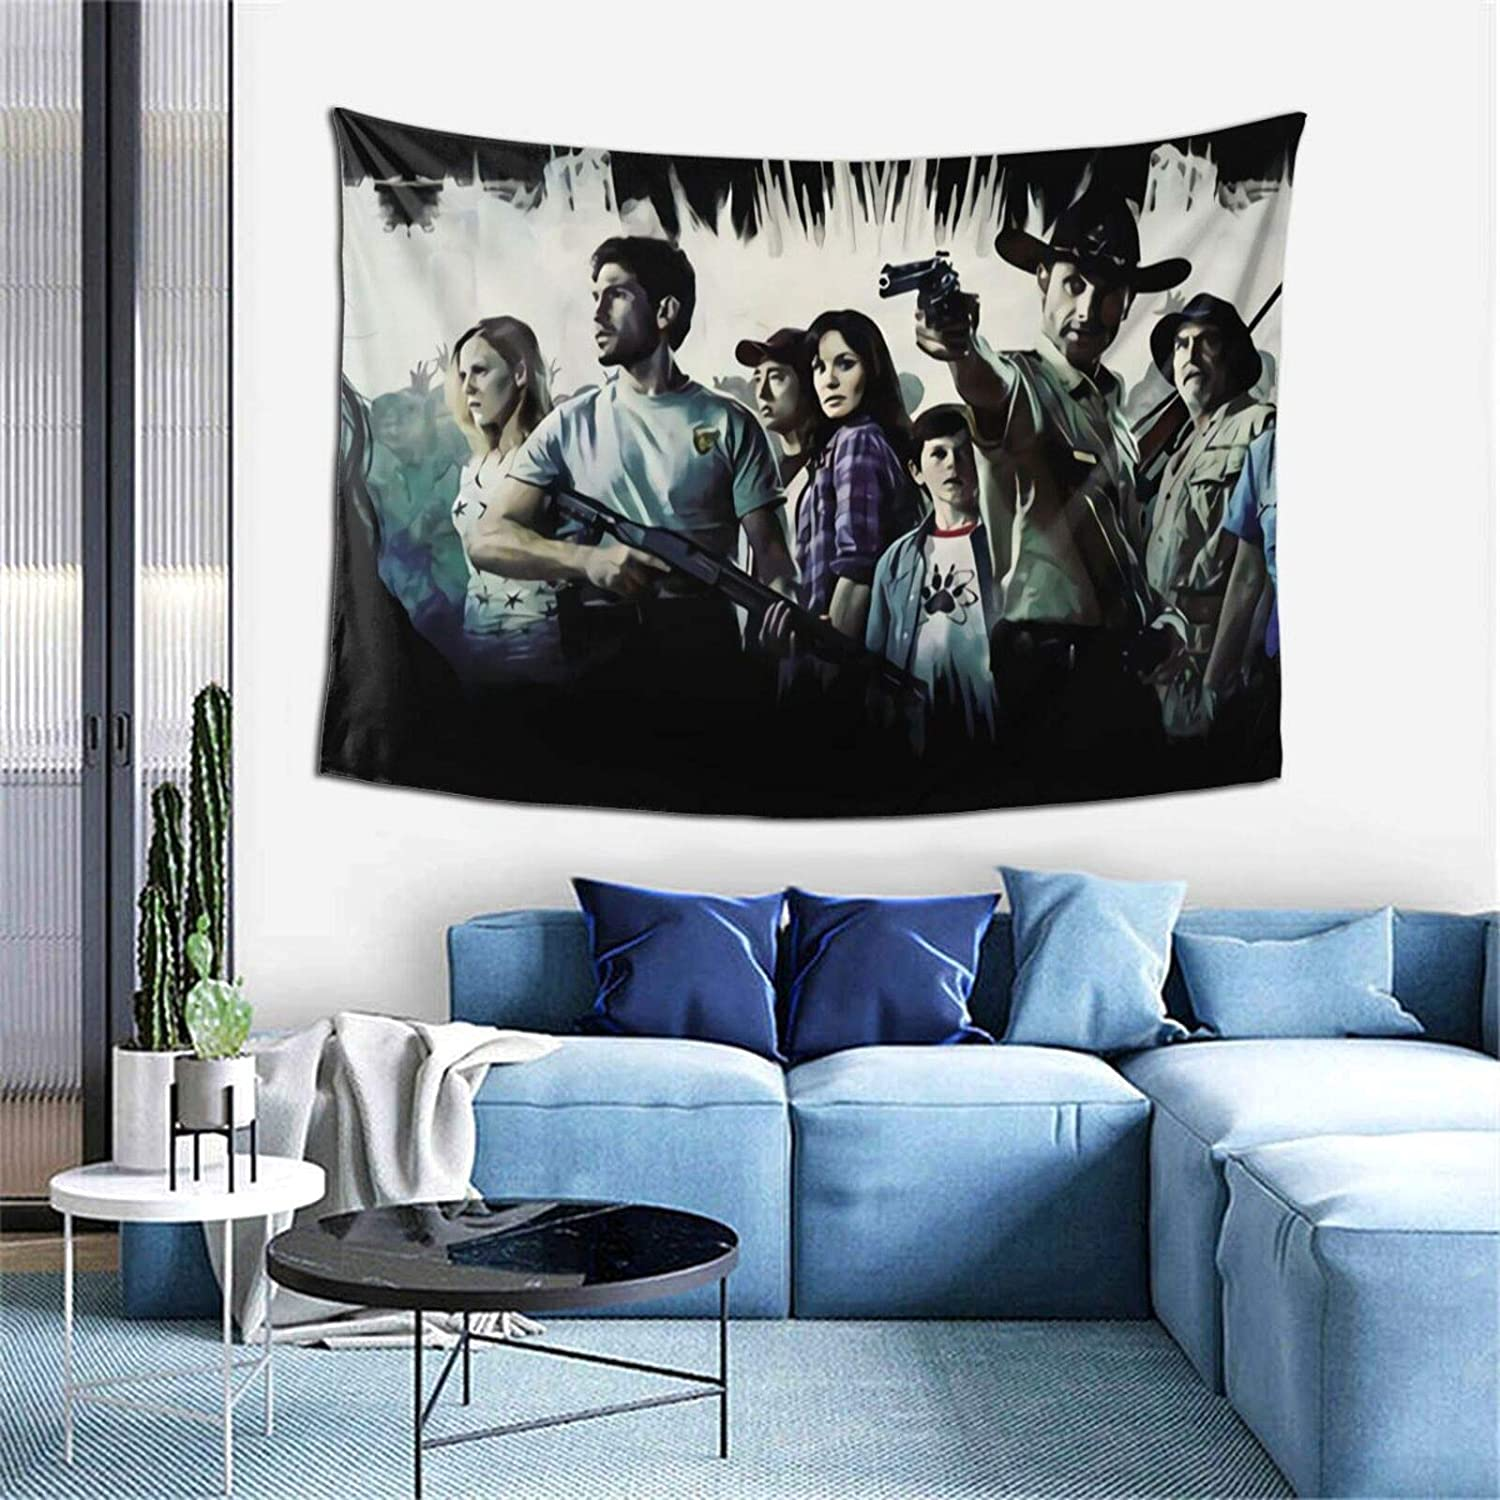 The Walking Dead Merchandise Tapestry Wall Hanging 3d Printing Wall Art Wall Blanket For Living Room Bedroom Home Decor 60x40 In